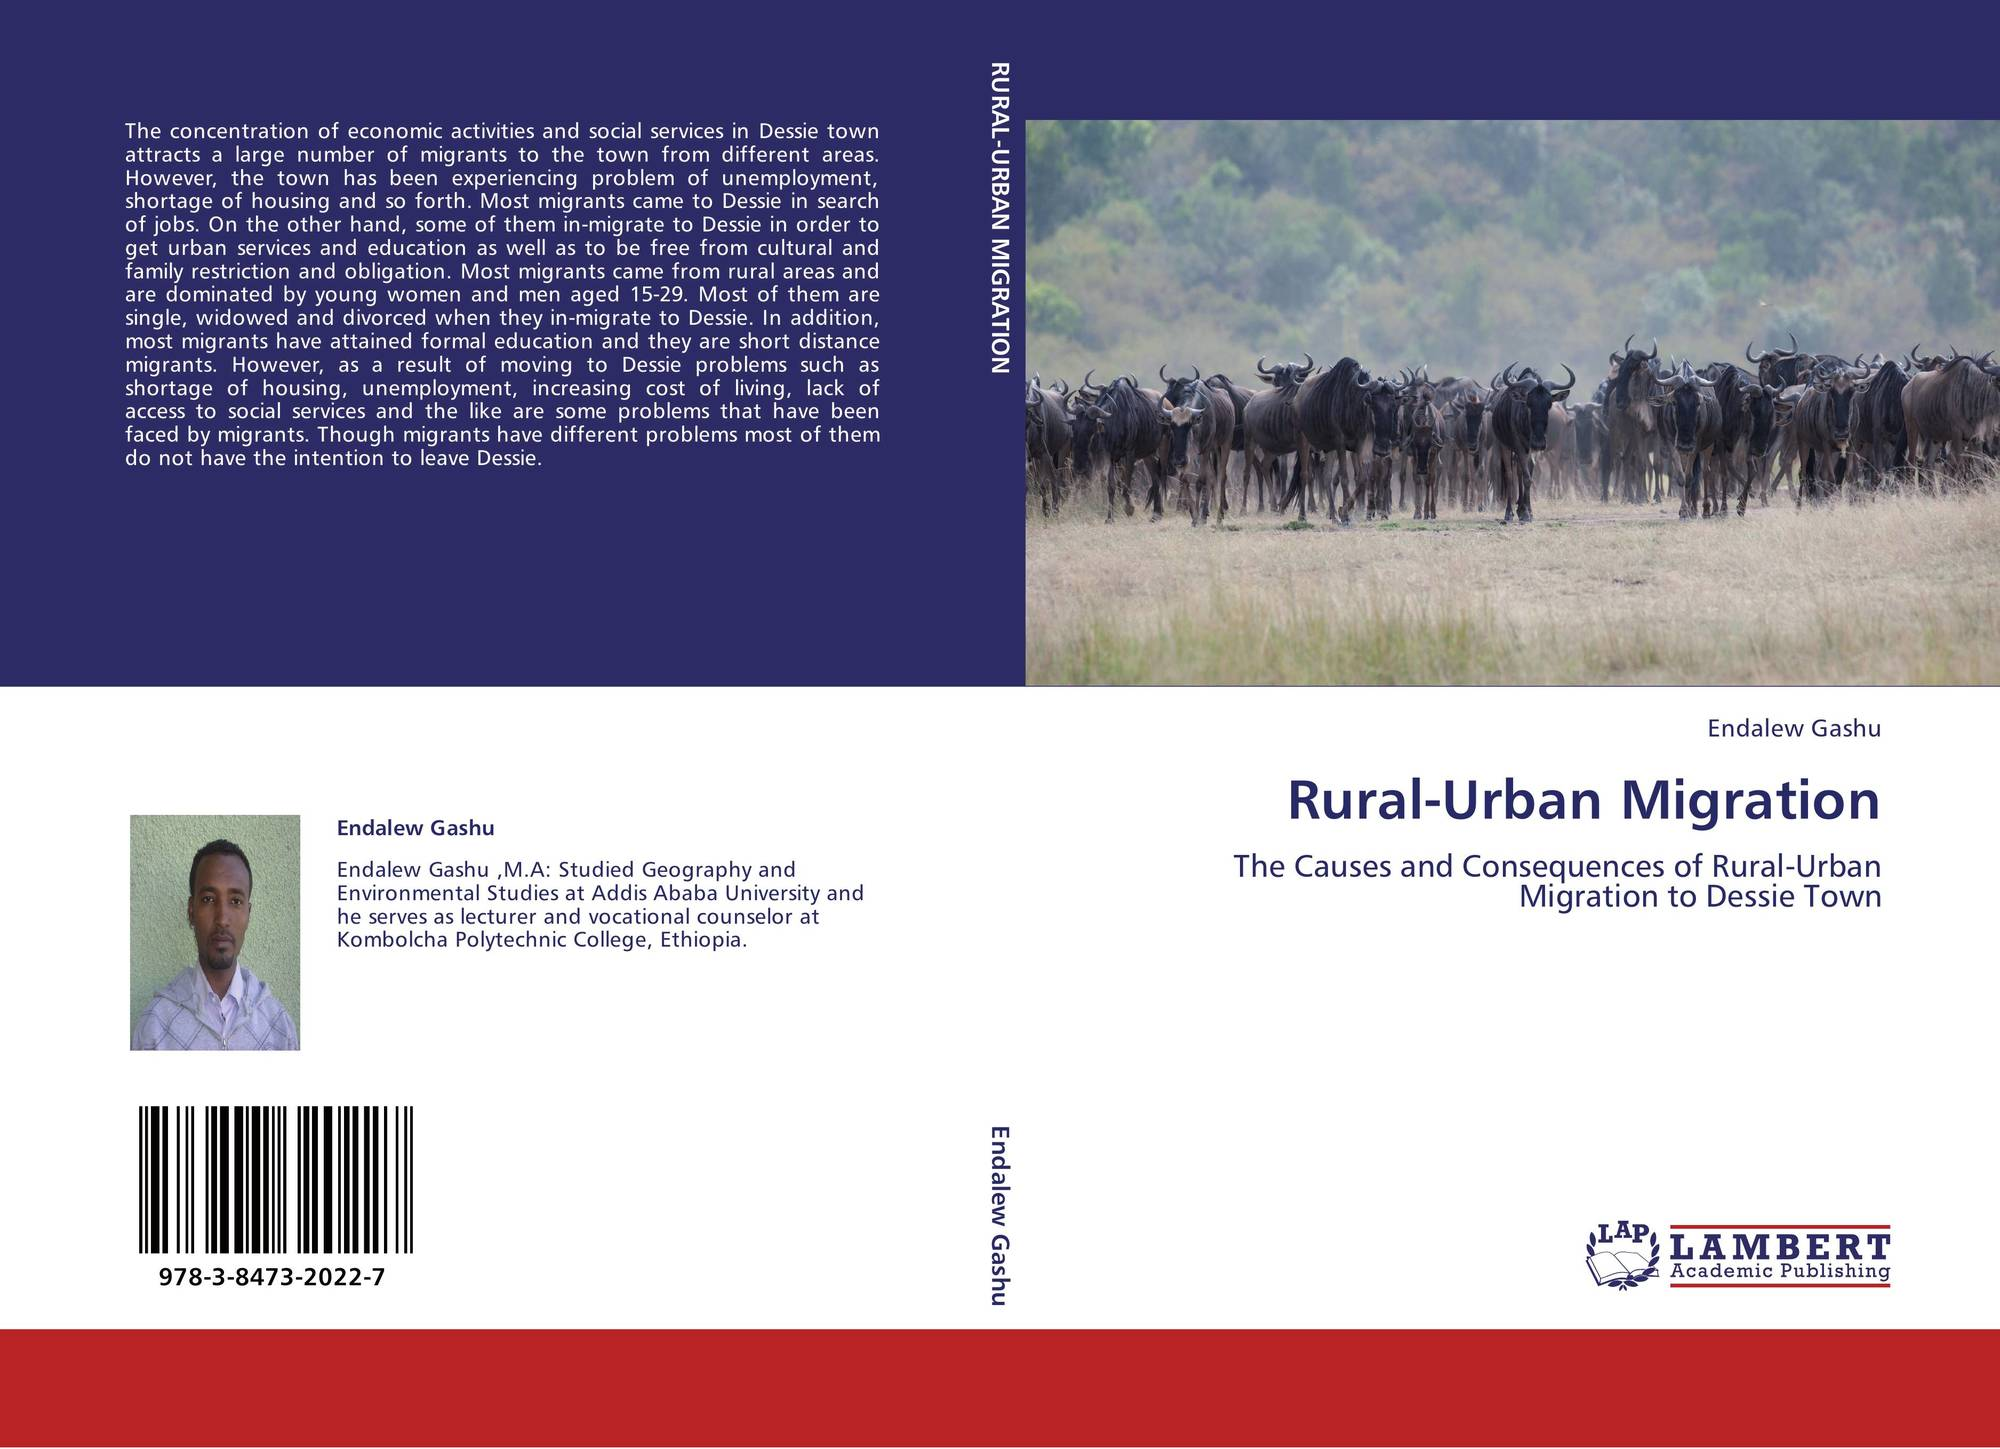 an analysis of the causes and consequences of rural to urban migration Rural-to-urban migration is a last-resort effort to sustain the livelihoods of rain-fed agricultural households, which make up nearly 85 percent of the ethiopian population [3.